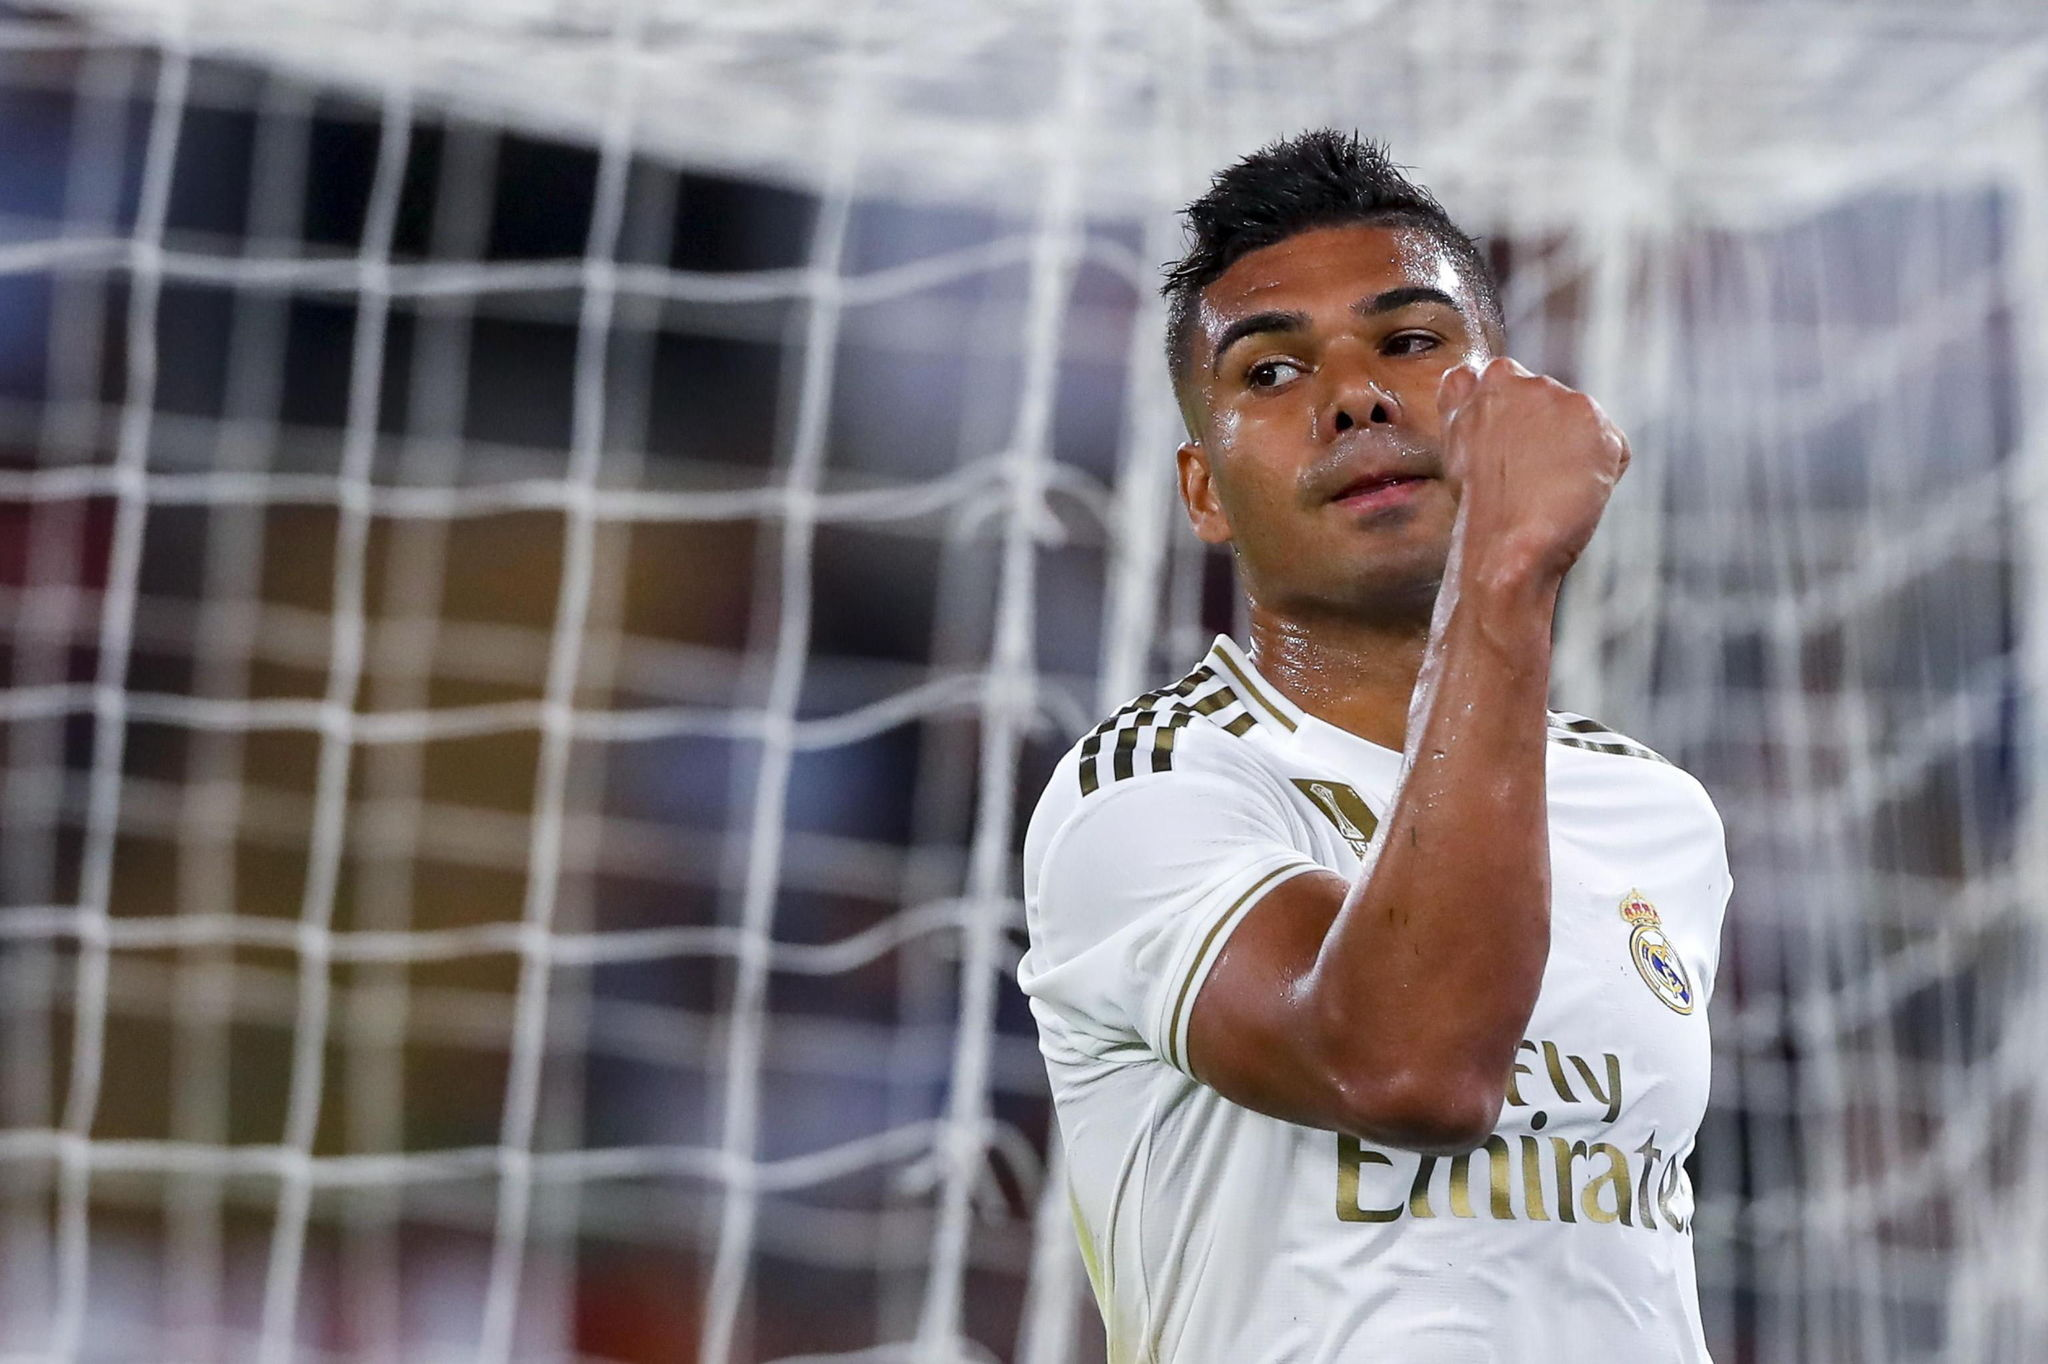 Rome (Italy), 07/08/2019.- Real Madrids <HIT>Casemiro</HIT> jubilates after scoring the 1-2 goal during the international friendly soccer match AS Roma vs Real Madrid CF at Olimpico stadium in Rome, Italy, 11 August 2019. (Futbol, Amistoso, Italia, Roma) EFE/EPA/ANGELO CARCONI